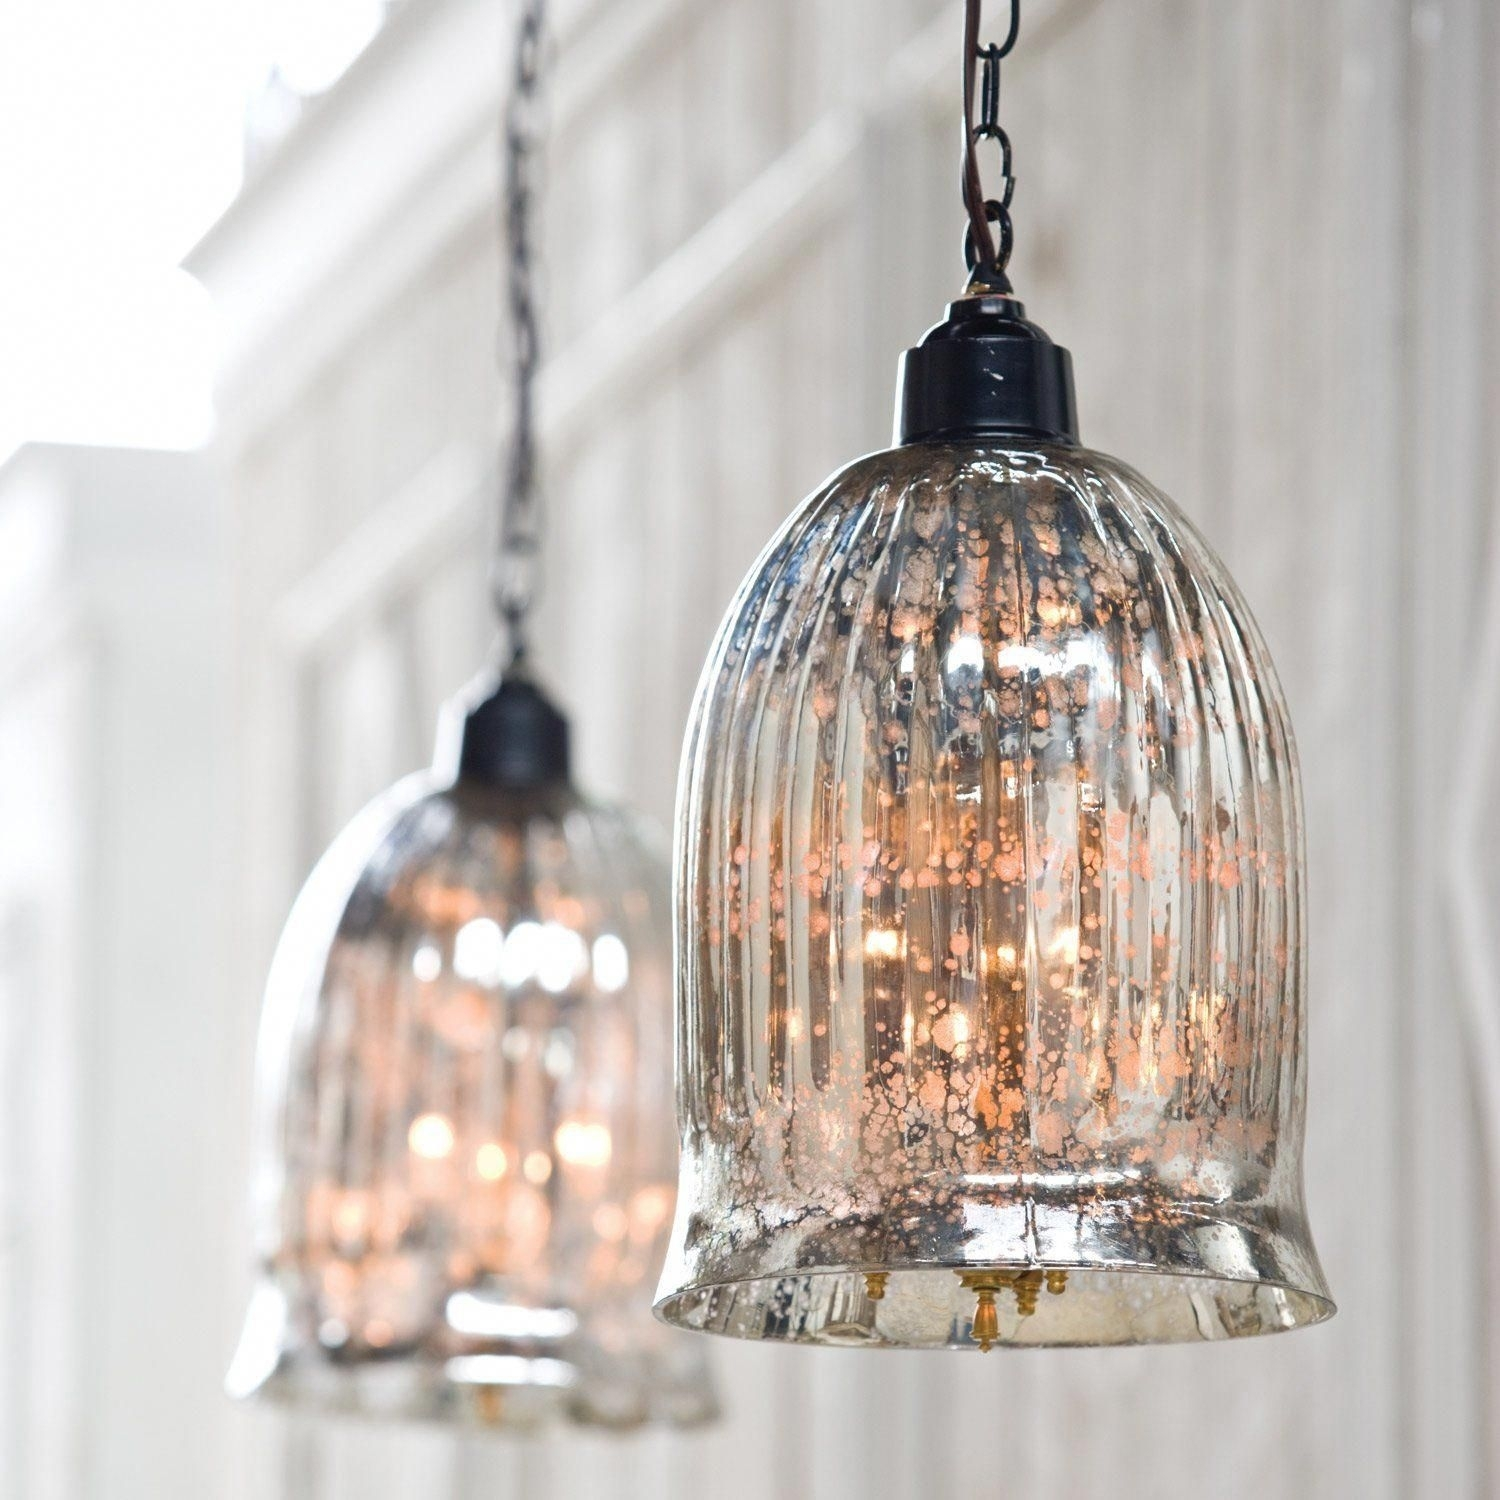 Glass Globe Pendant Light Ideas On Foter